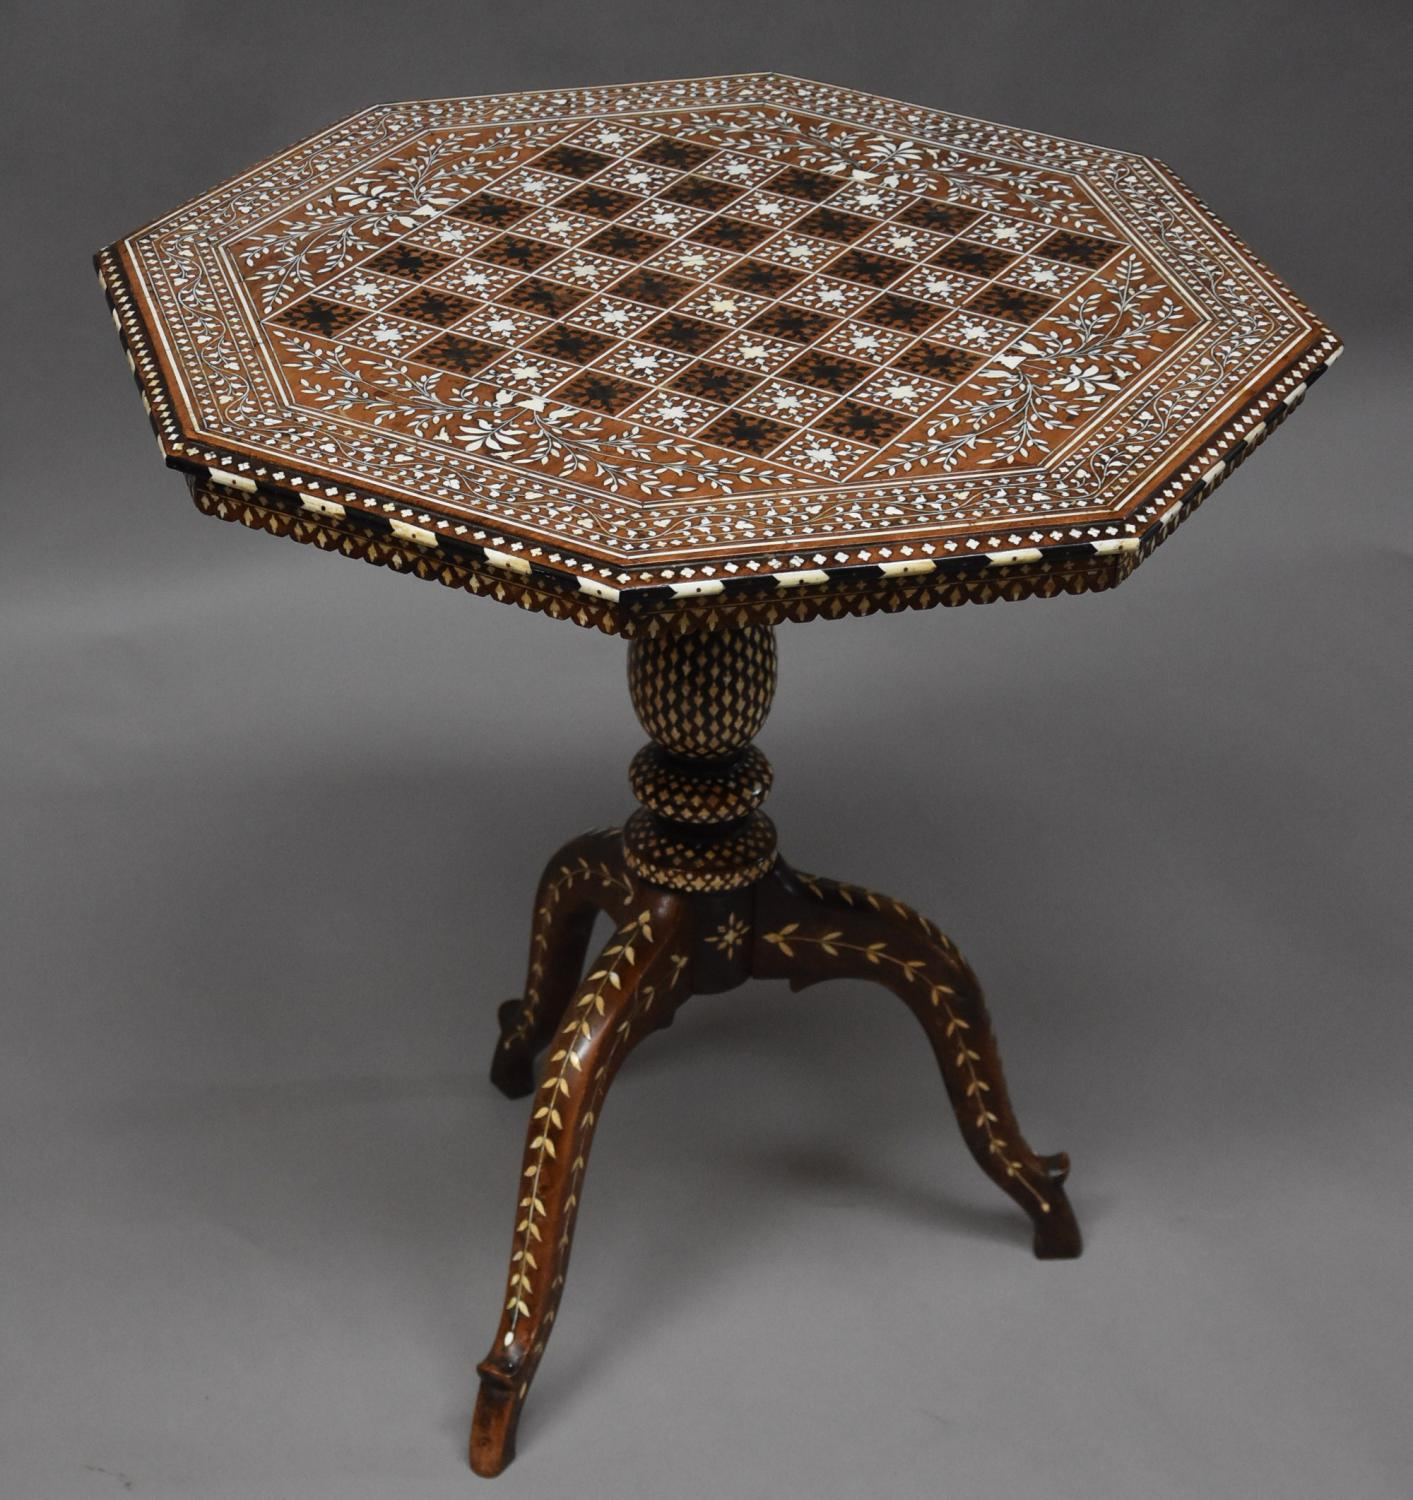 Superb Anglo Indian octagonal inlaid table